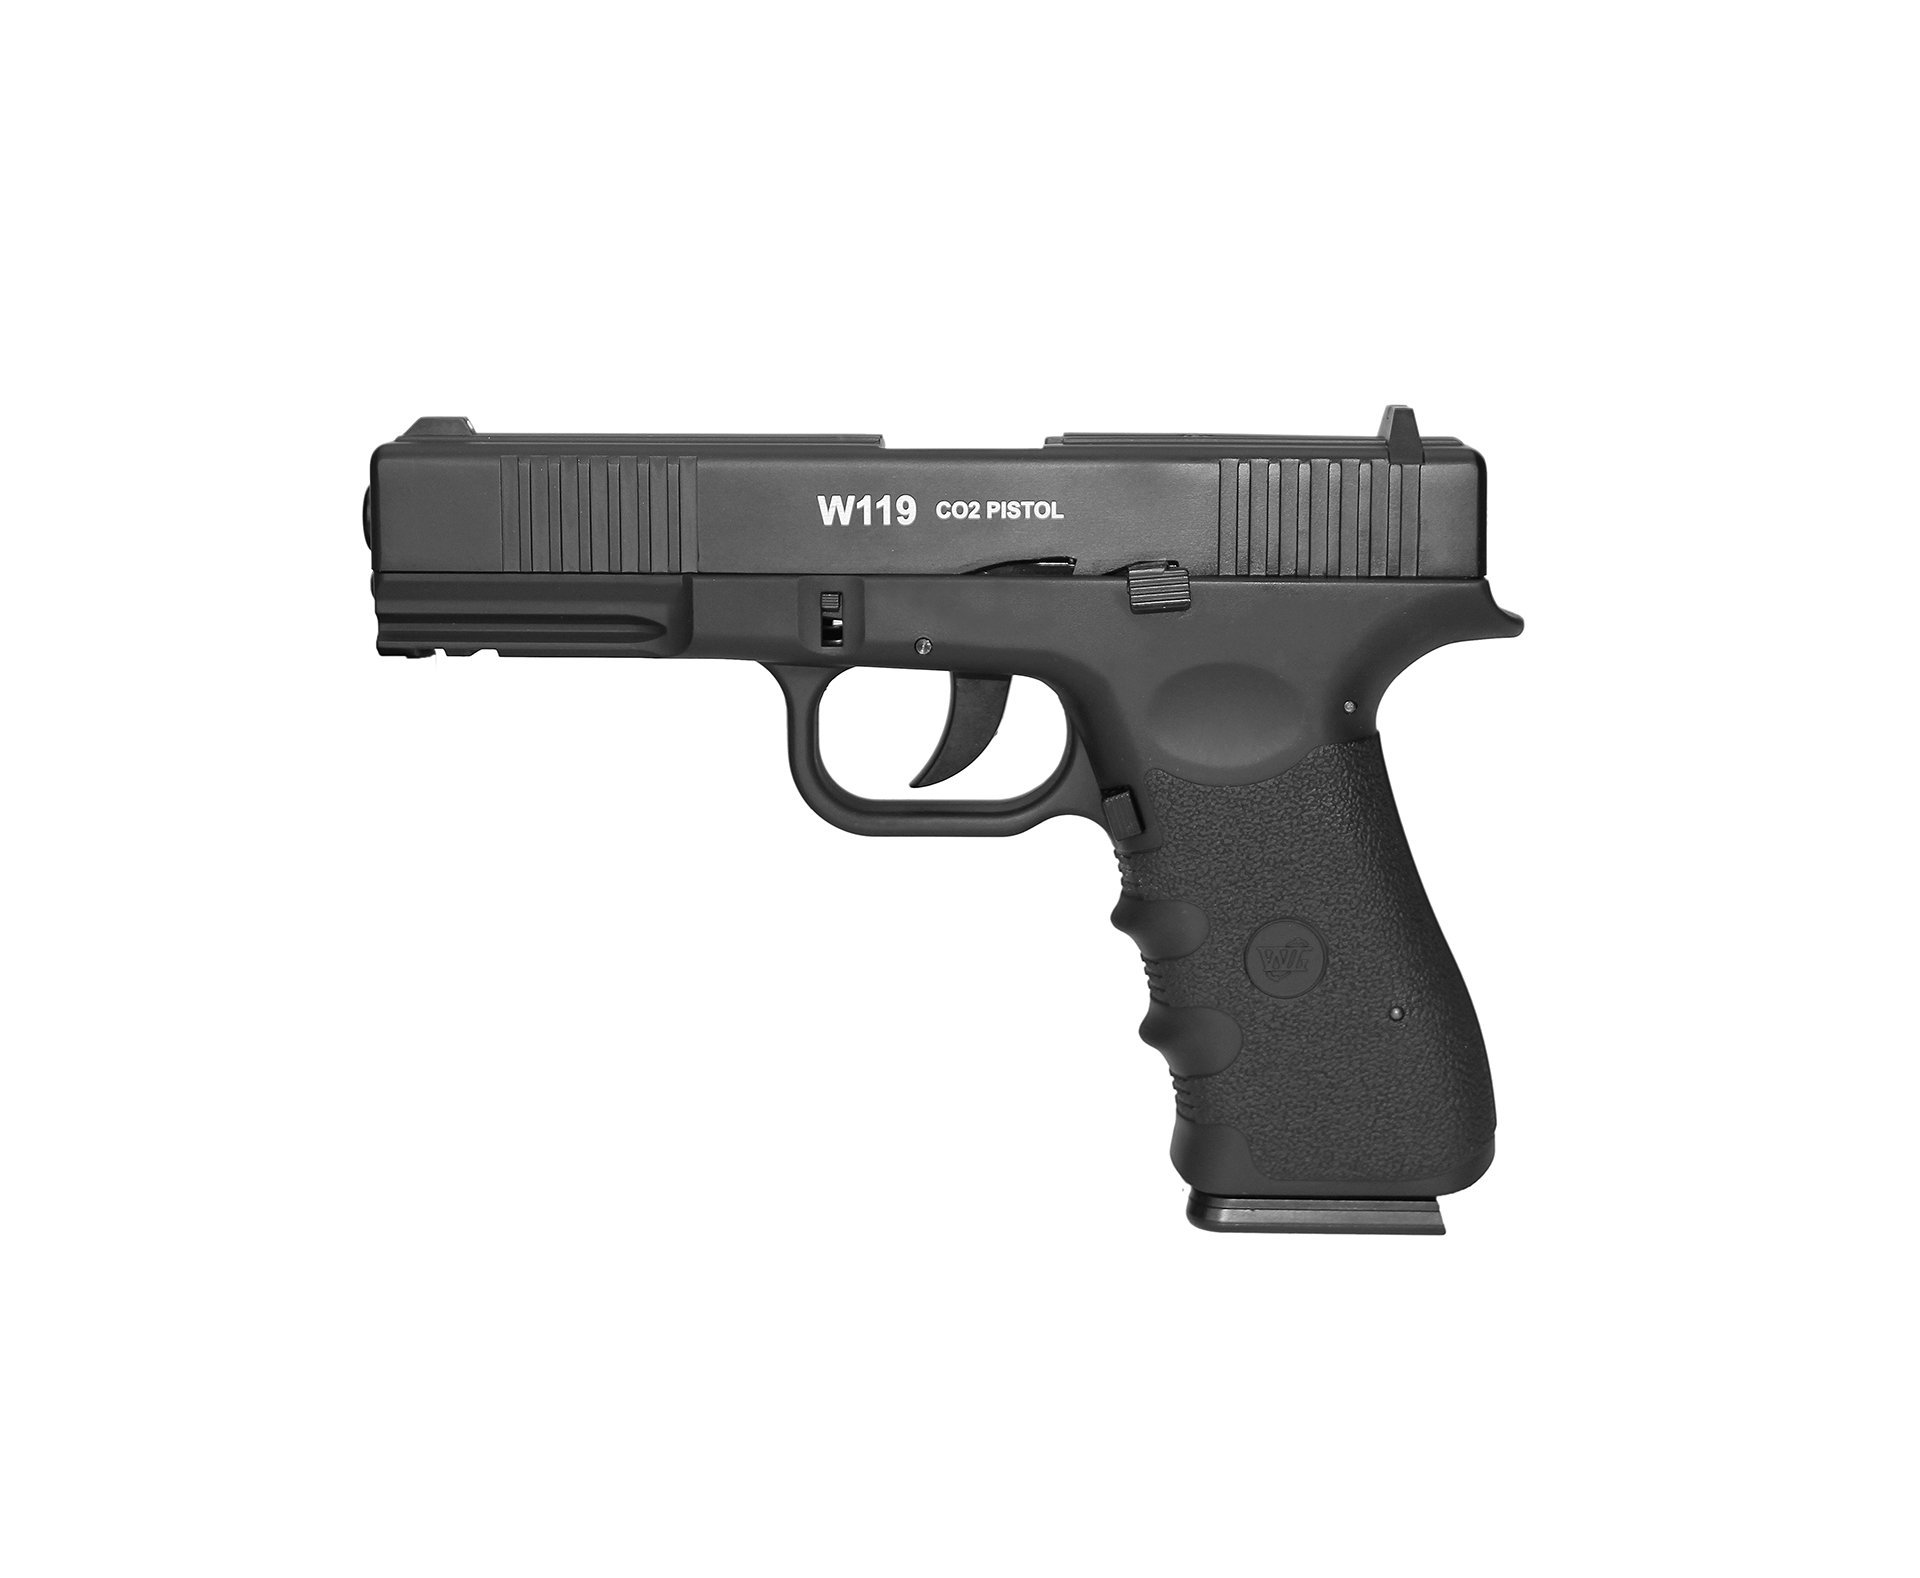 Pistola De Pressão Gas Co2 Wg Glock W119 Slide Metal Blowback 4,5mm